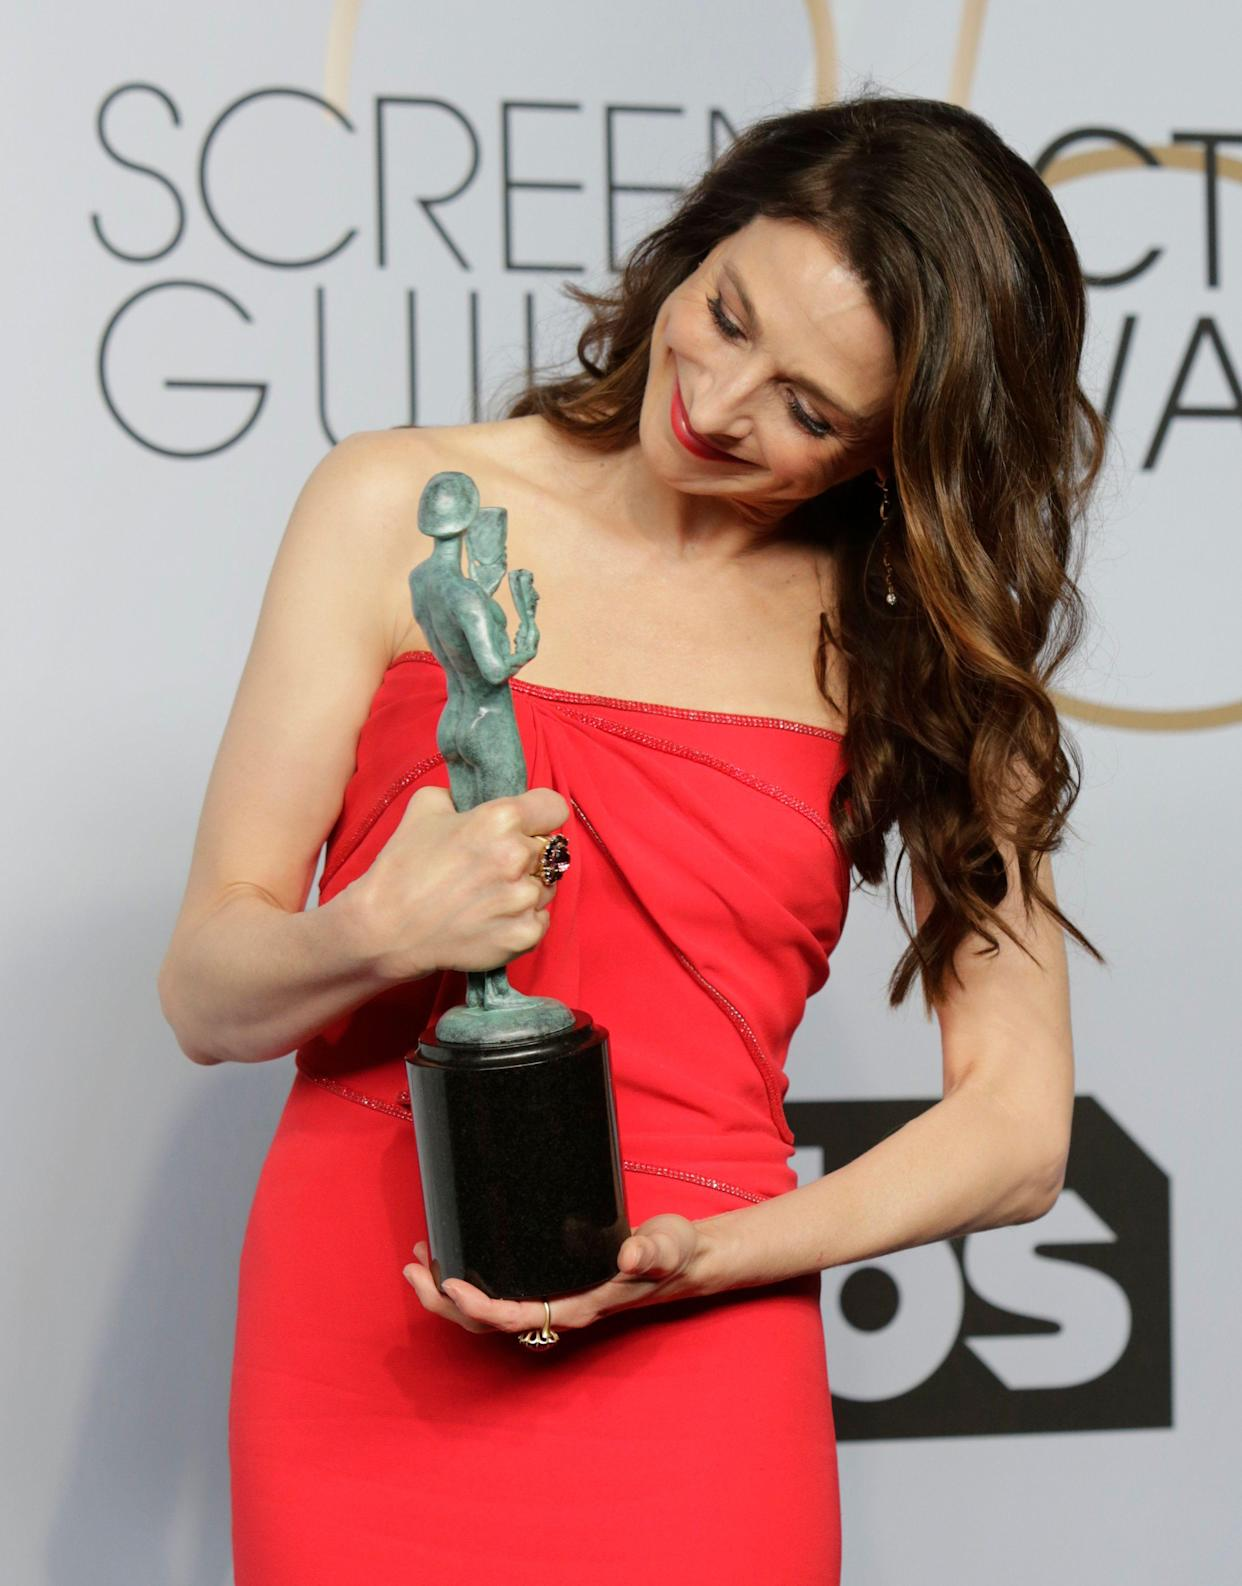 """25th Screen Actors Guild Awards – Photo Room – Los Angeles, California, U.S., January 27, 2019 - Marin Hinkle poses backstage with her Performance by an Ensemble in a Comedy Series award for """"The Marvelous Mrs. Maisel"""". REUTERS/Monica Almeida"""